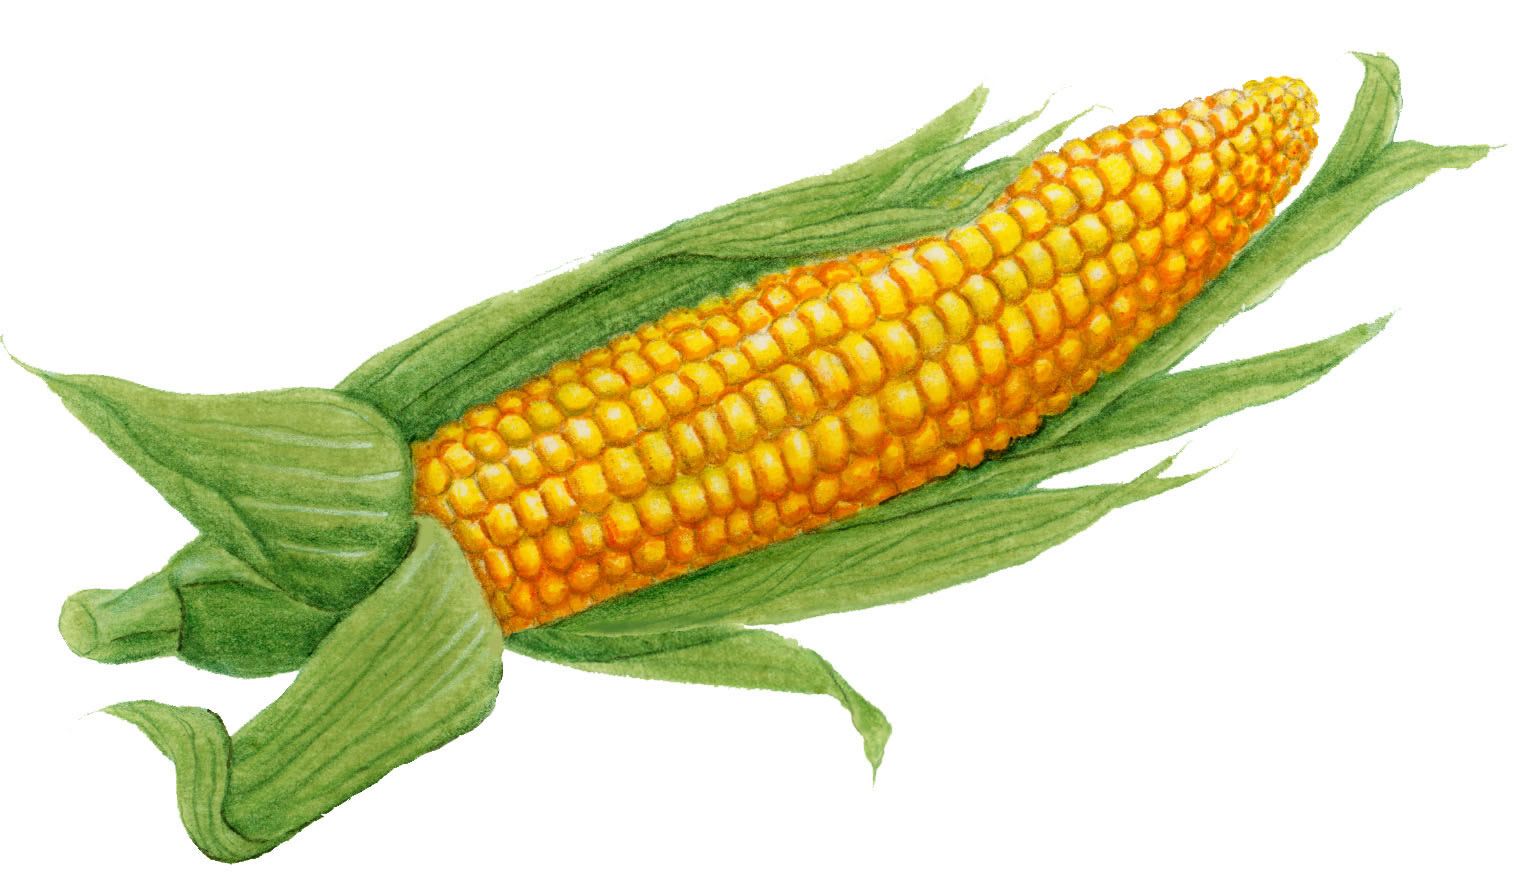 ear of corn drawing at getdrawings com free for personal use ear rh getdrawings com Cornucopia Clip Art ear of corn clipart free